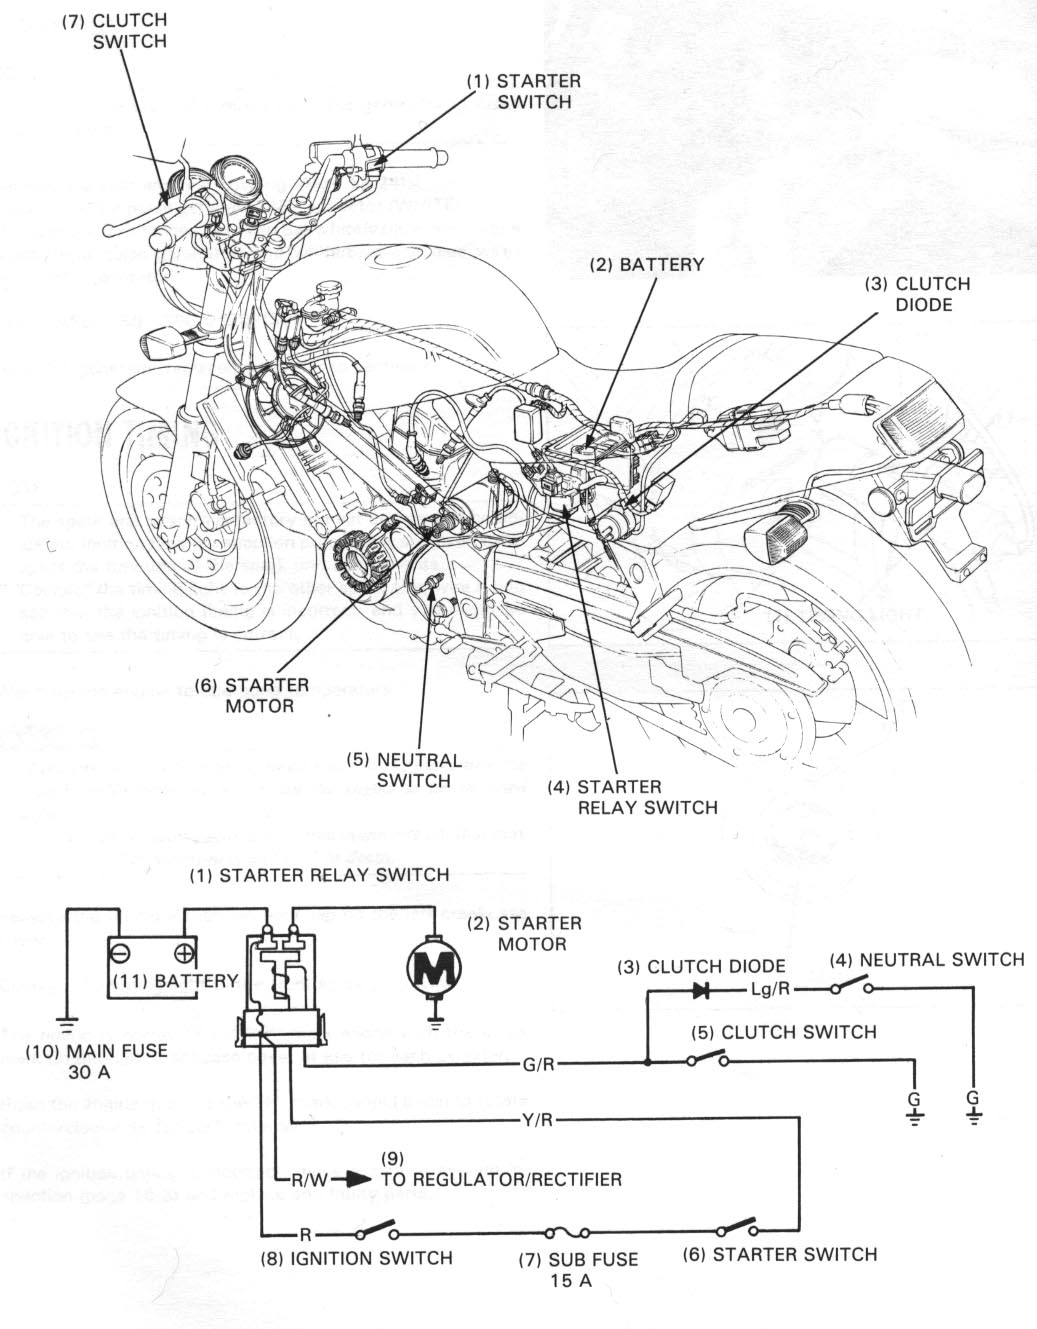 Honda Nt650 Service Manual Section 17 Electric Starter Diode Wiring Diagram Really Big Version Color